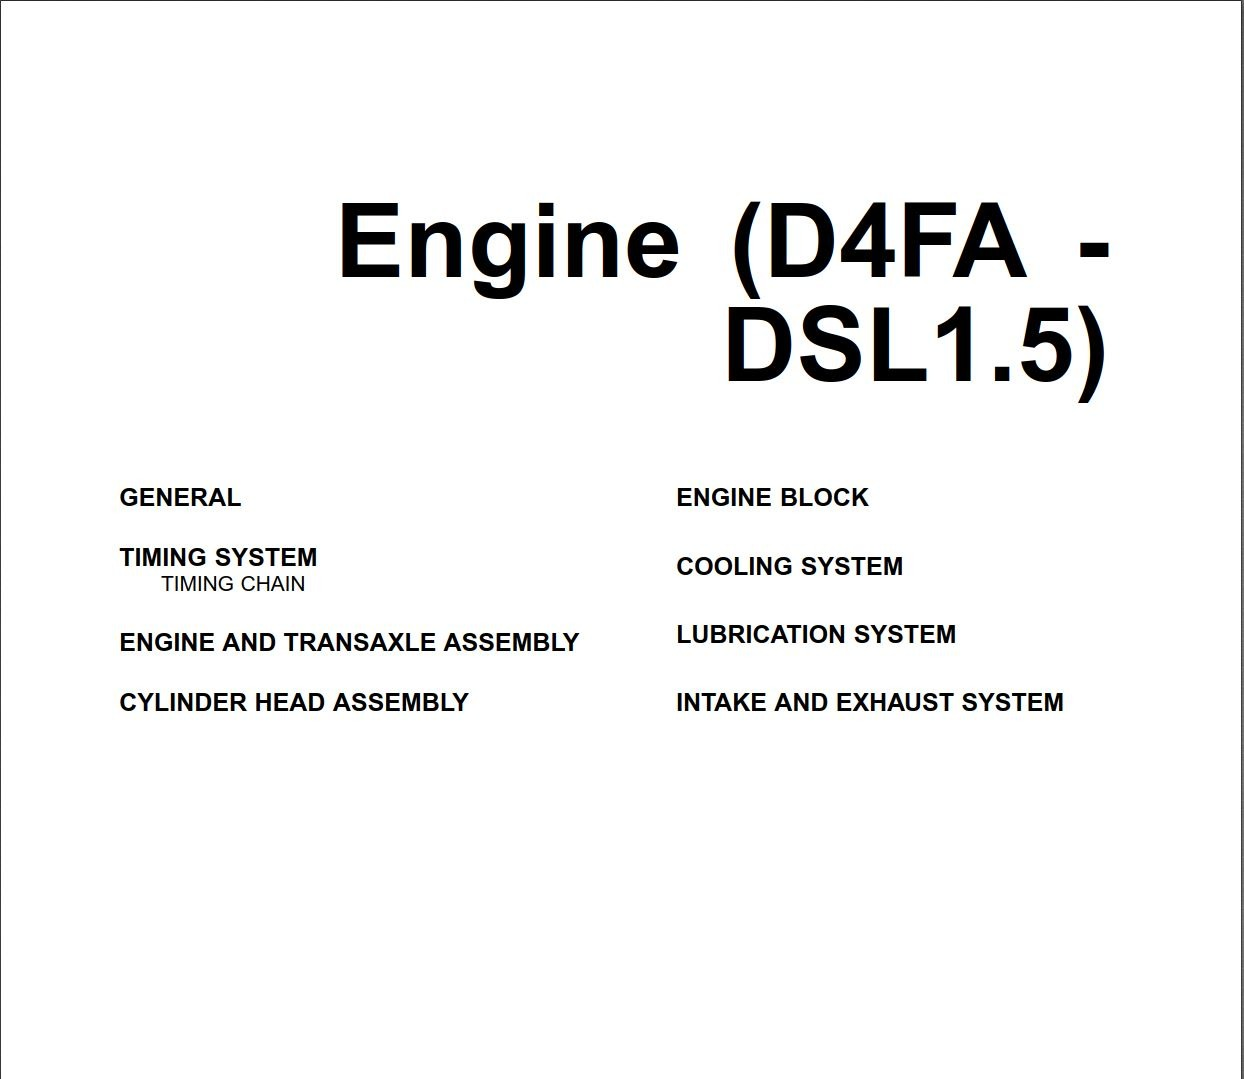 Hyundai Engine D4FA-DSL1.5 Workshop Manual